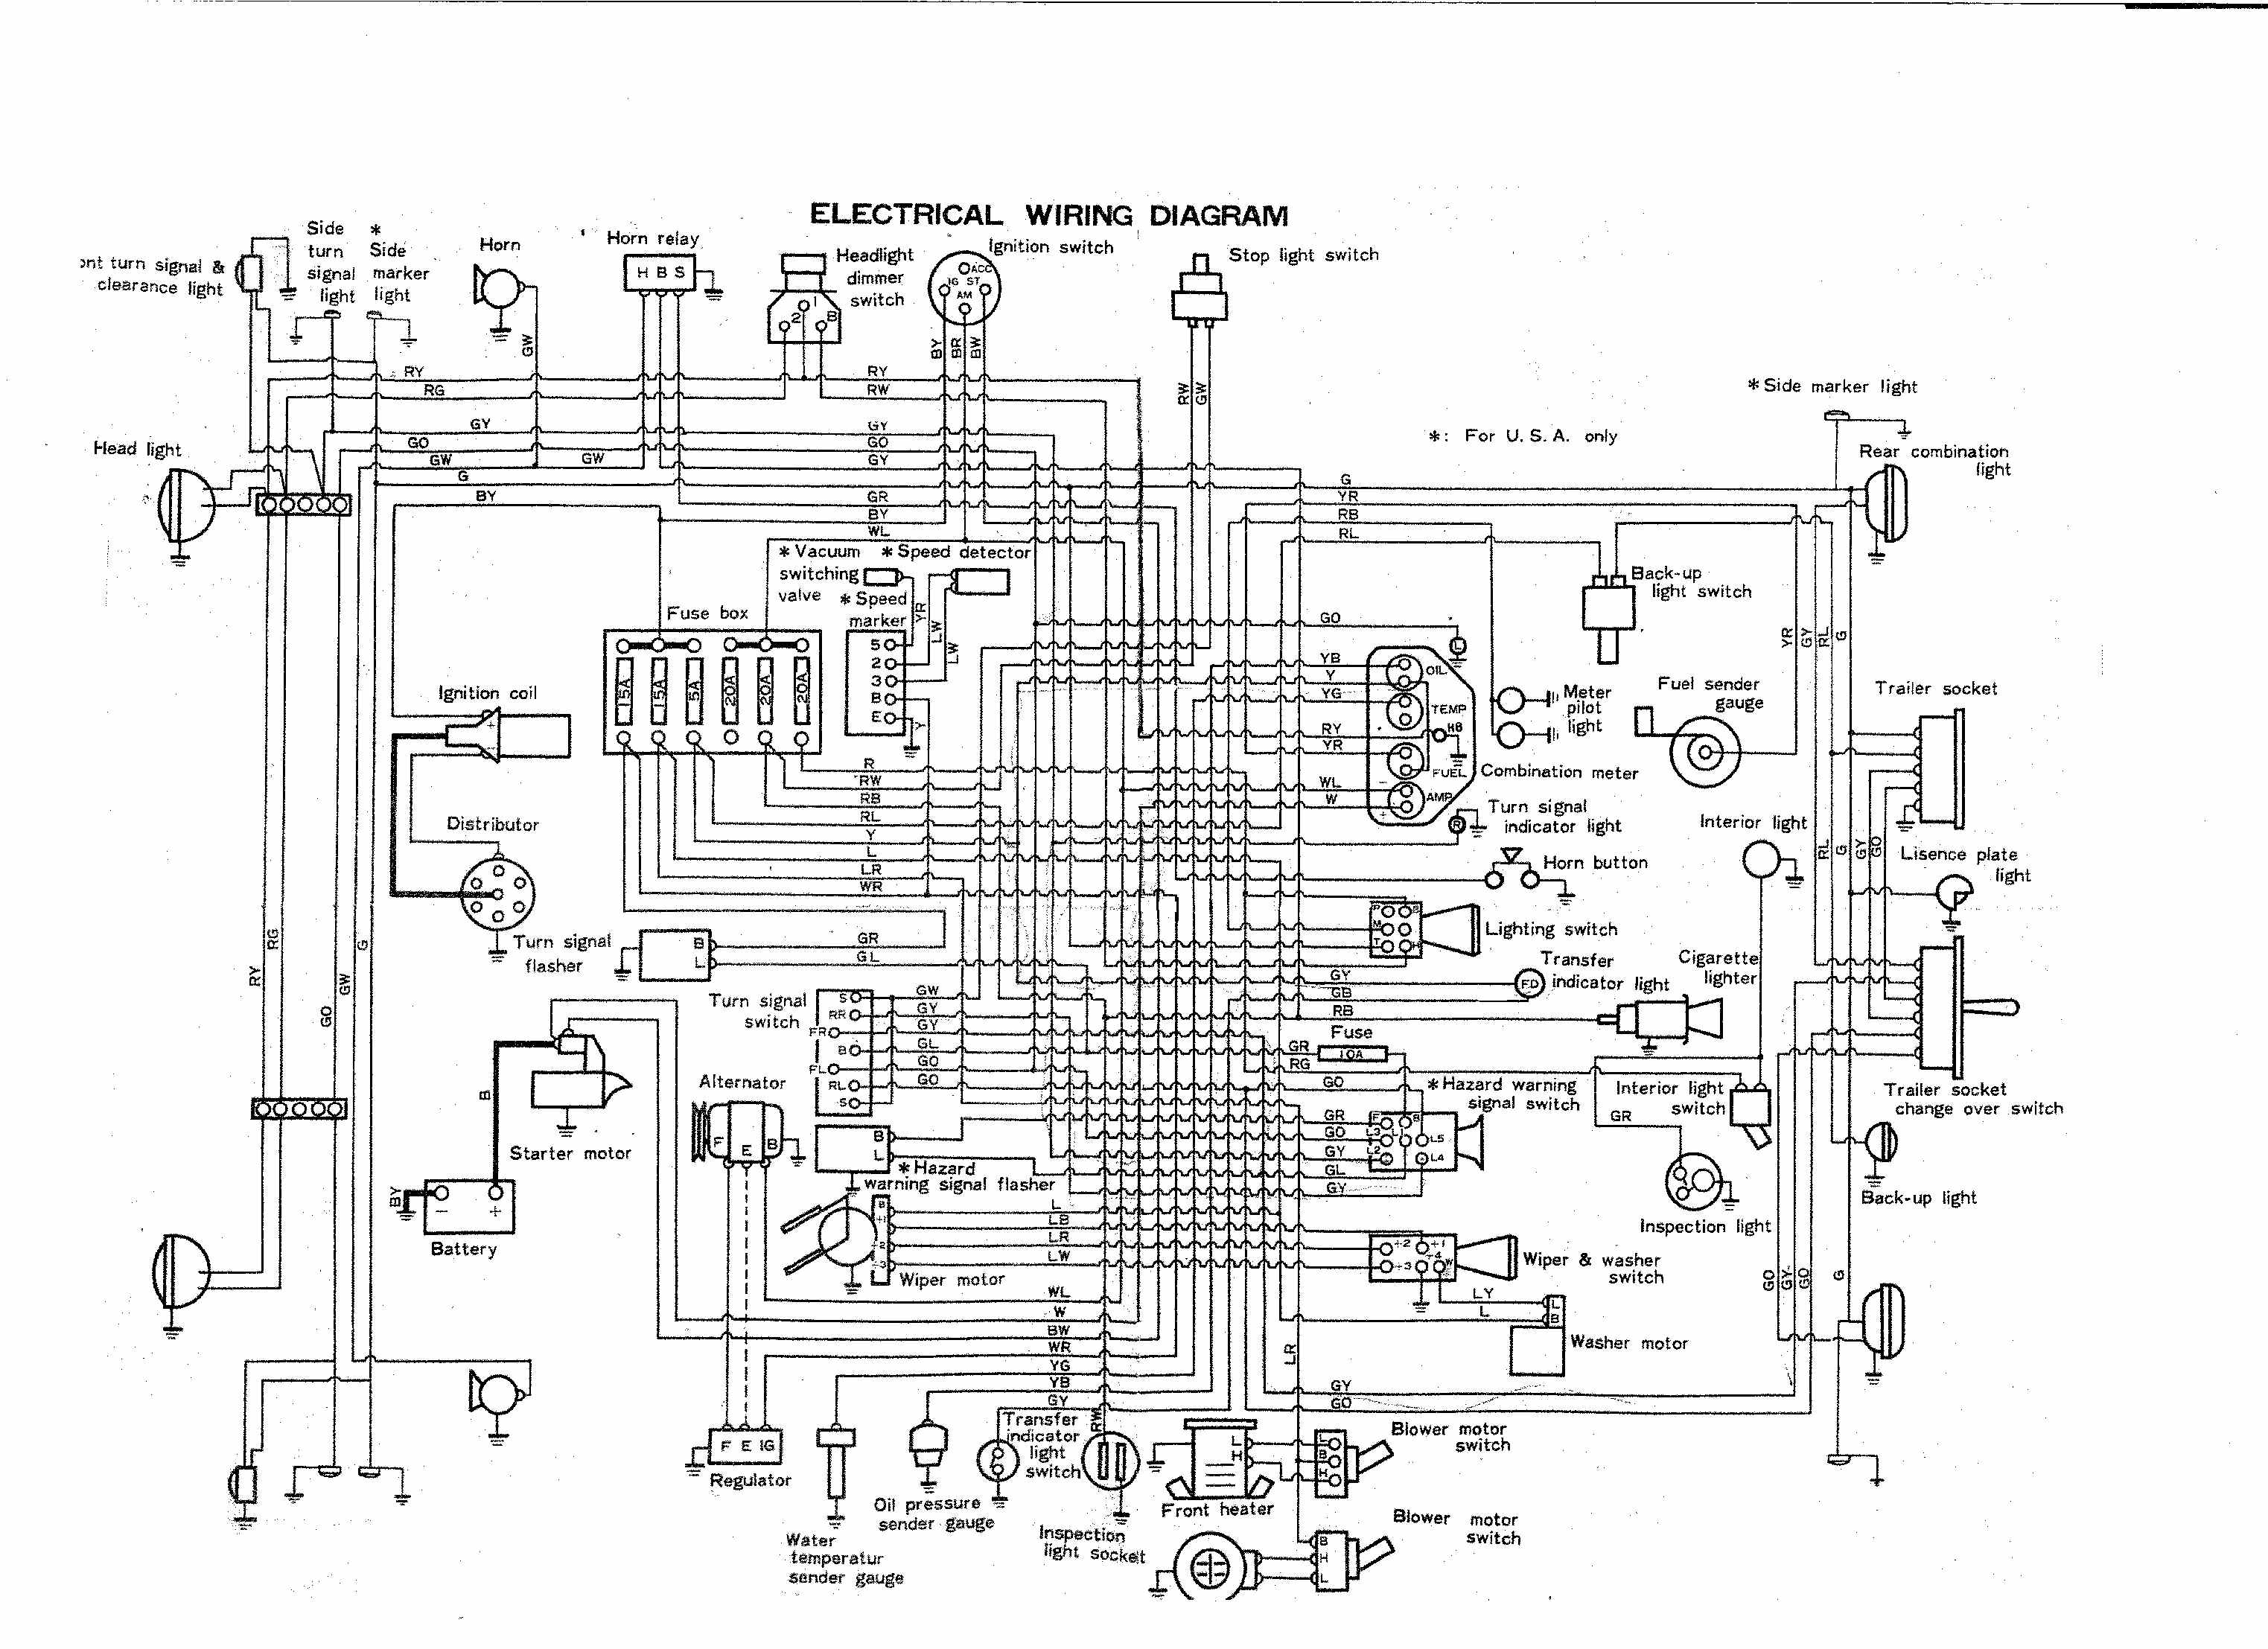 1970 FJ40 1969 fj40 wiring diagram 1978 international scout wiring diagram  at crackthecode.co